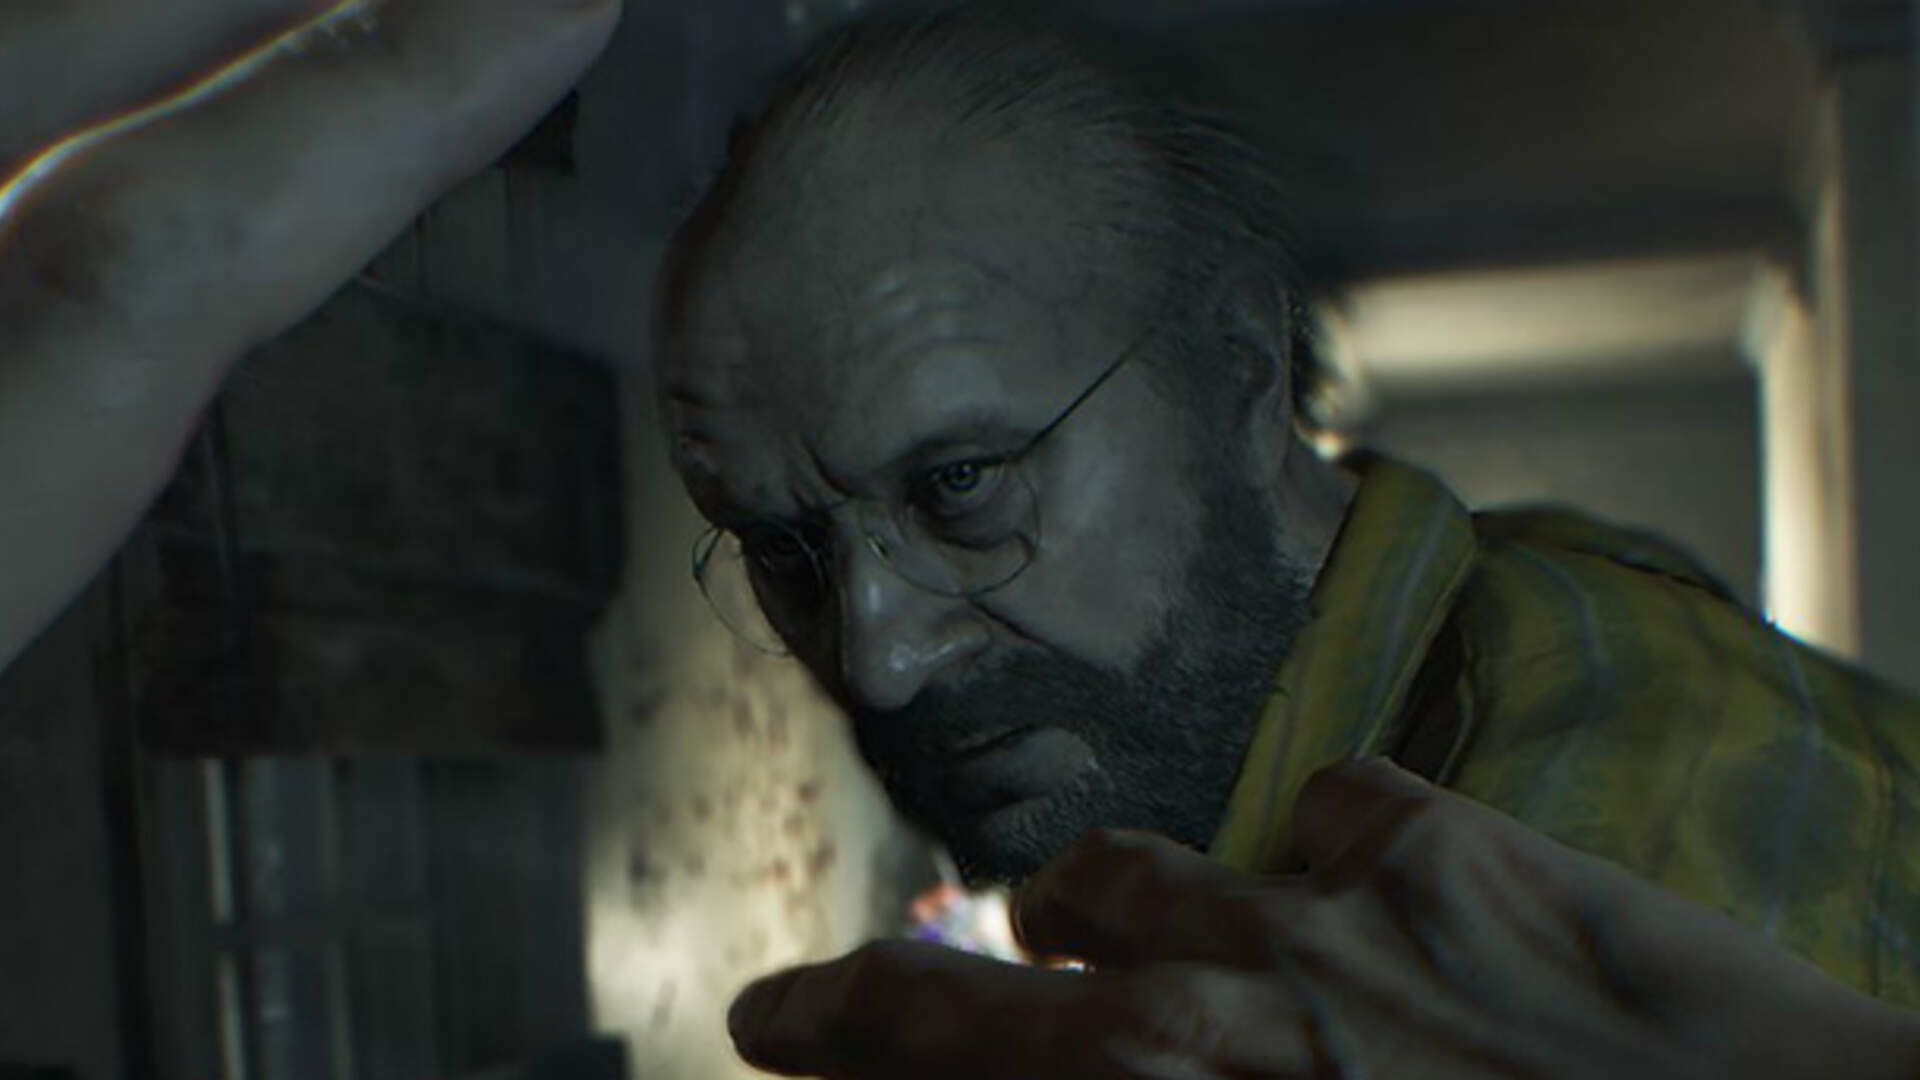 Resident Evil 7 PS4 Review: REwinding To The Beginning